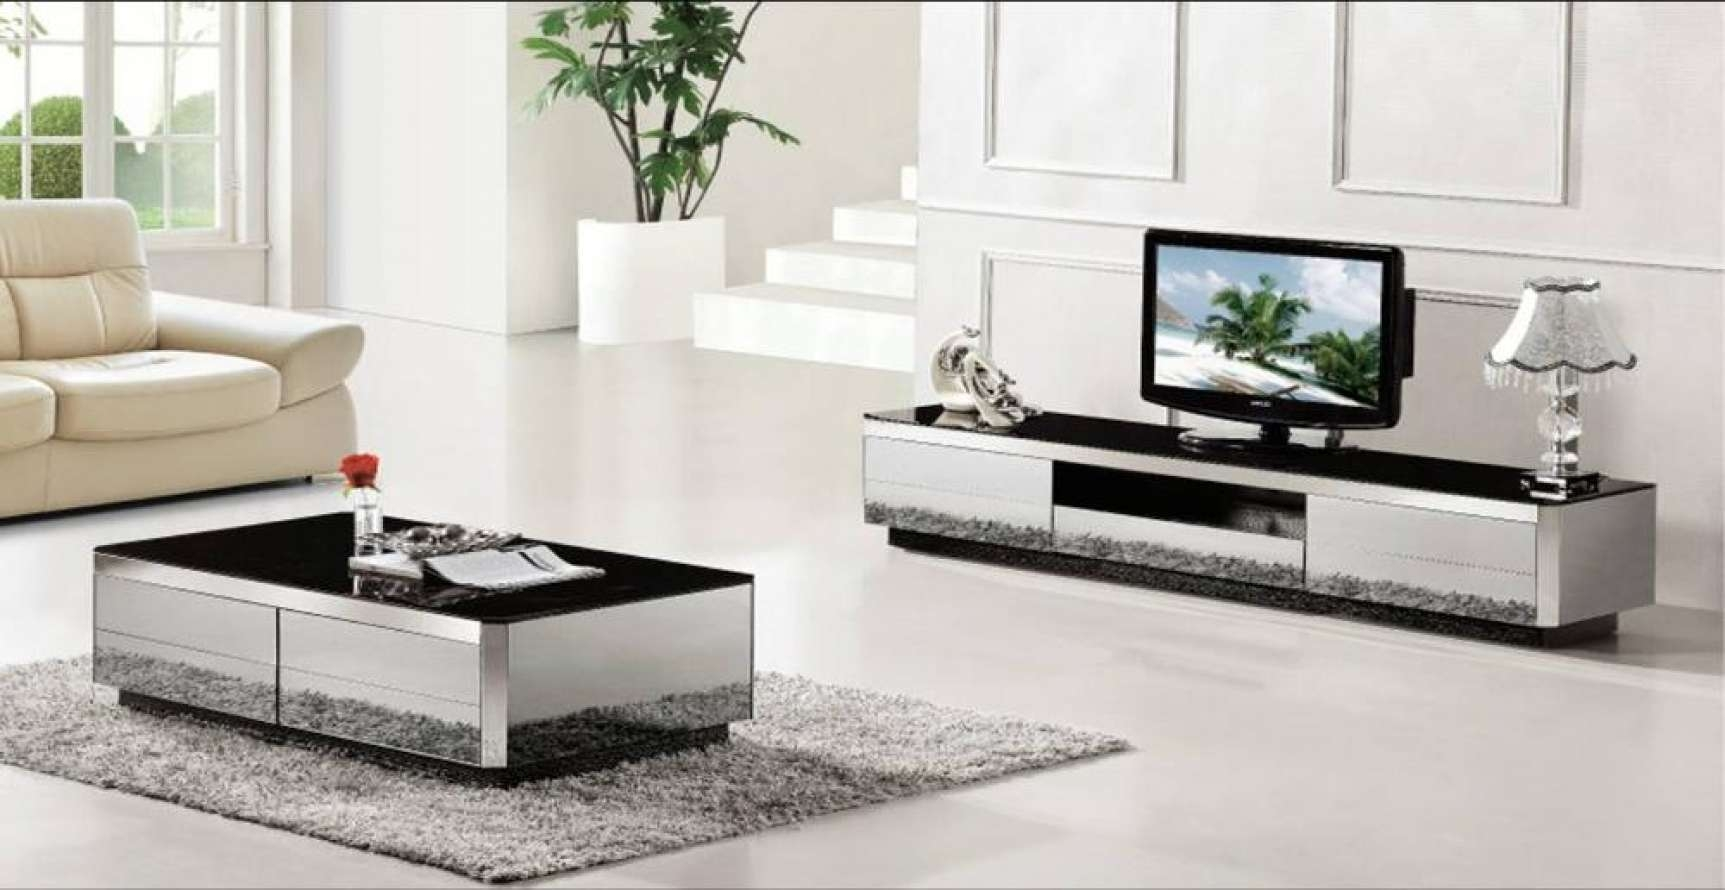 Coffee Table : Tv Stands Stand And Coffee Table Diy Matching Throughout Coffee Tables And Tv Stands Matching (View 7 of 15)